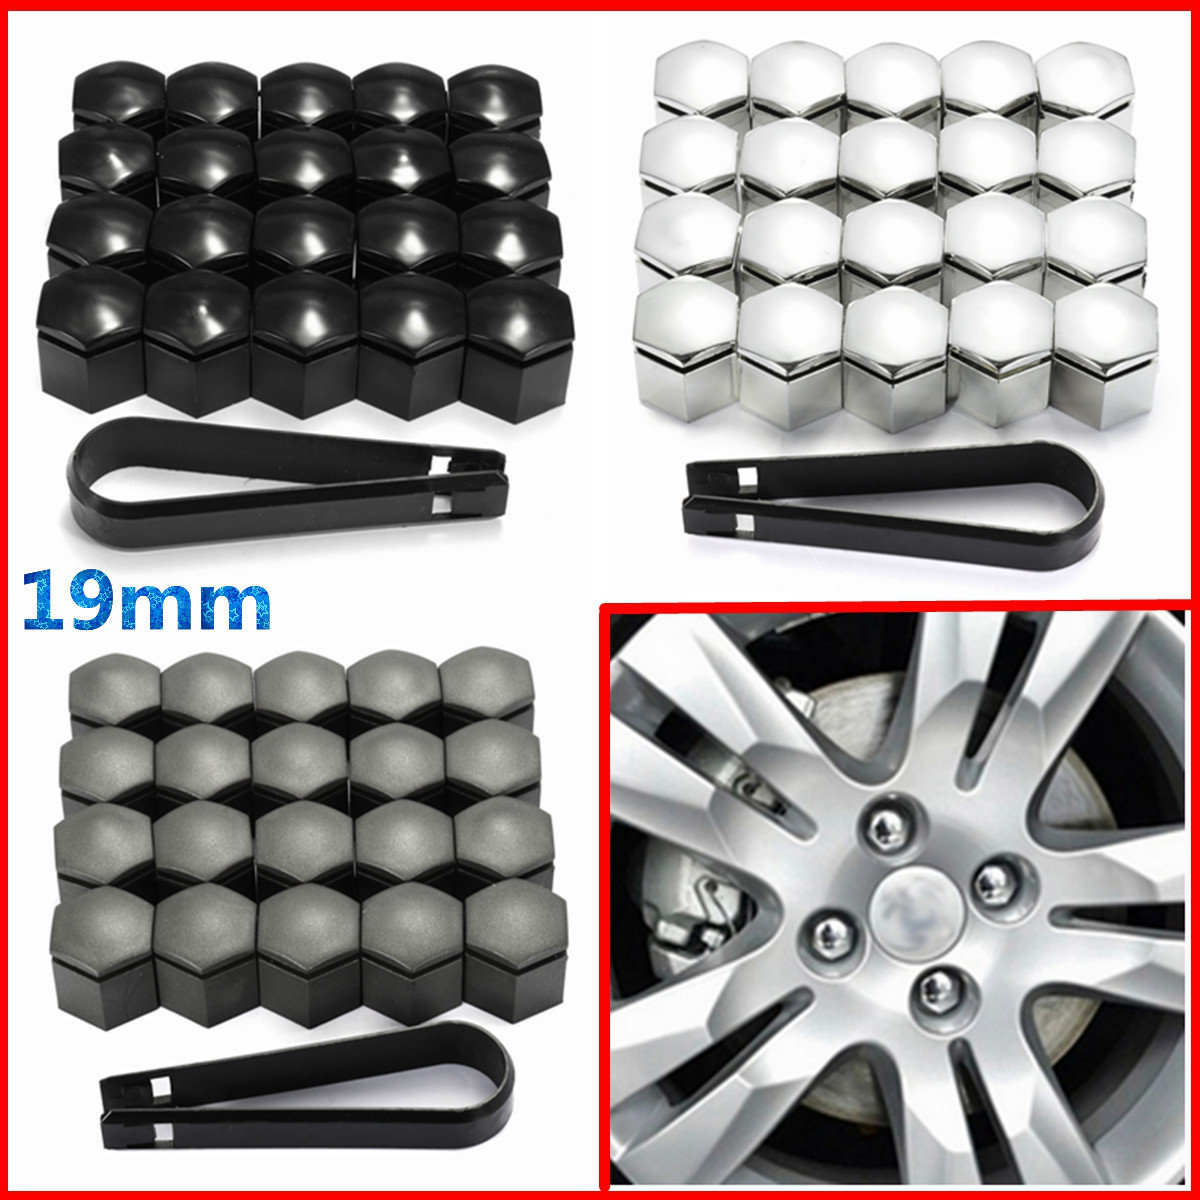 PLASTIC Removal Tool for Wheel Bolt Nut Caps Covers fits VAUXHALL MOKKA